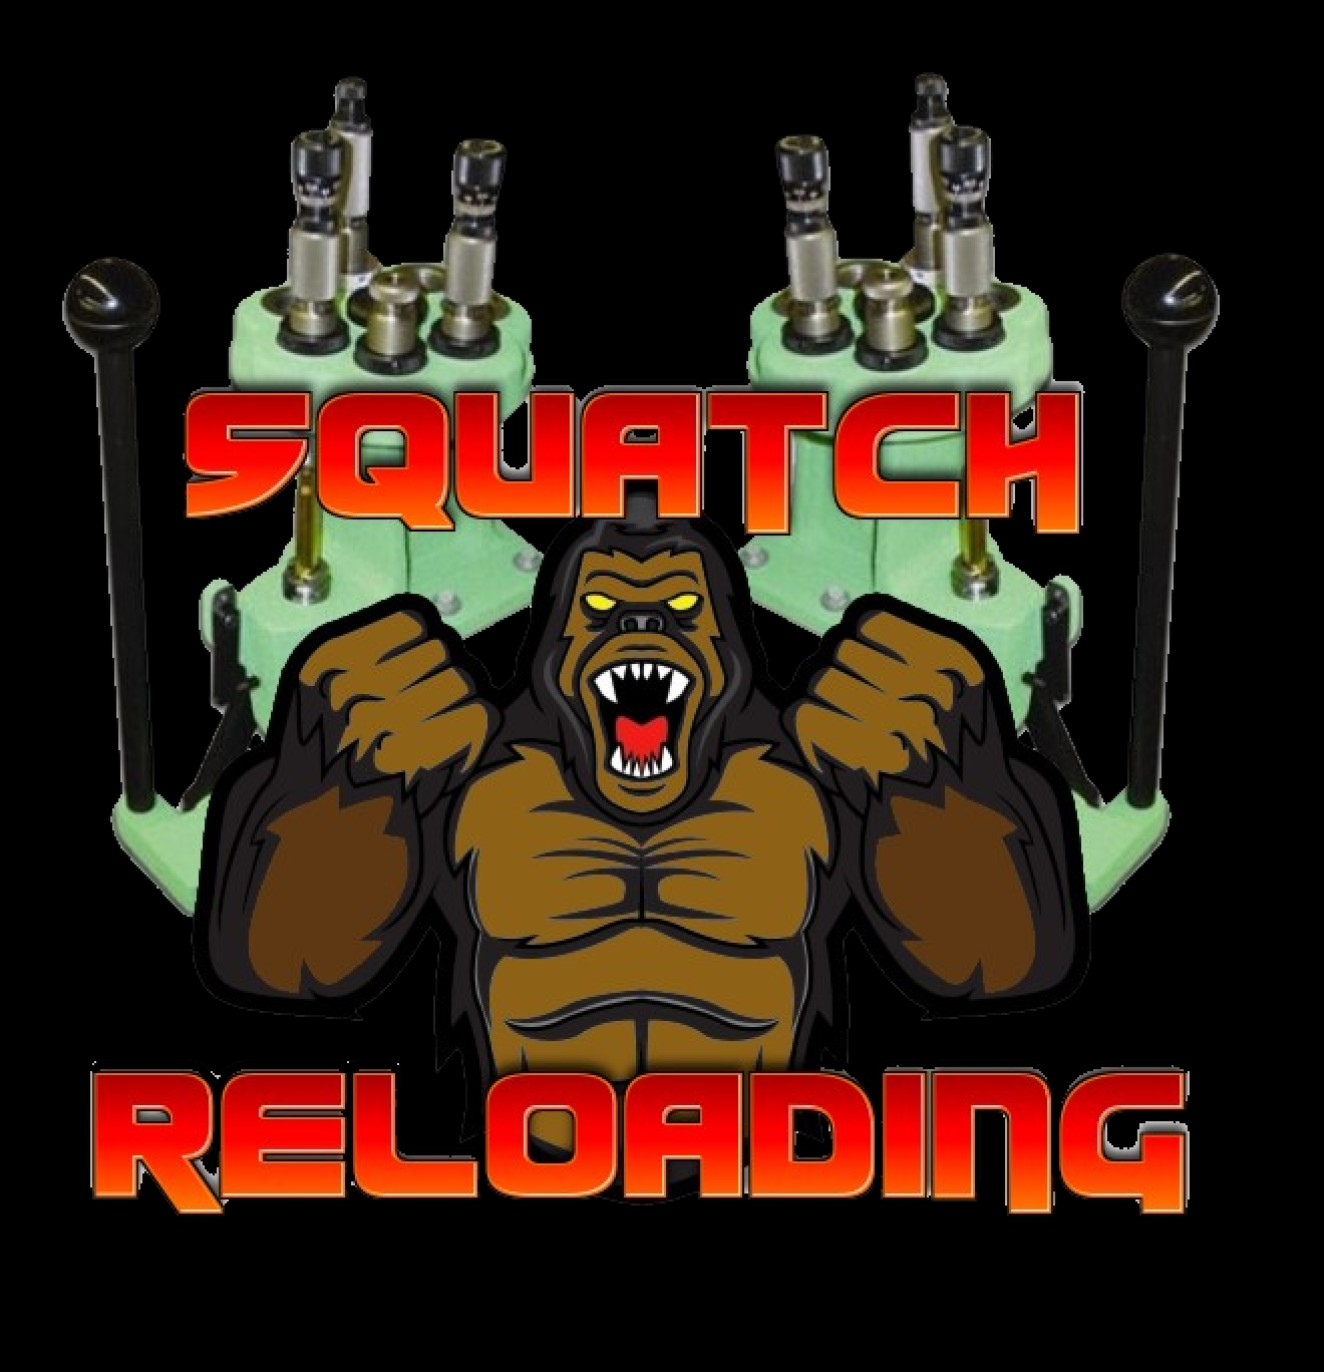 Top 5 Common New Reloader Mistakes - Squatch Chronicles 2